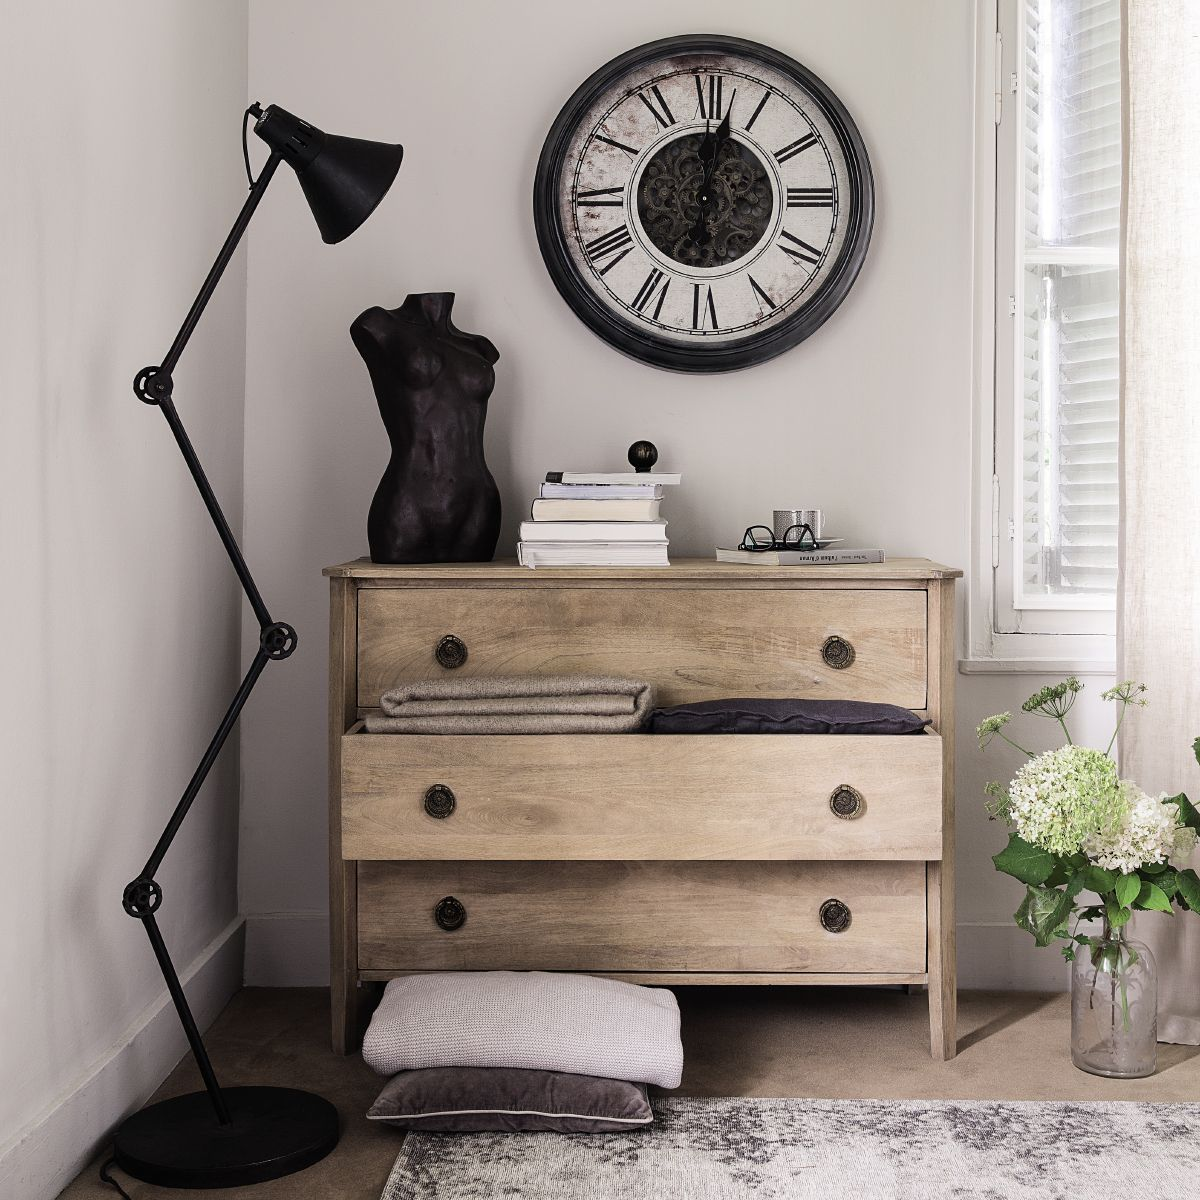 maison du monde catalogue excellent meuble salon maison du monde toulouse photo soufflant. Black Bedroom Furniture Sets. Home Design Ideas